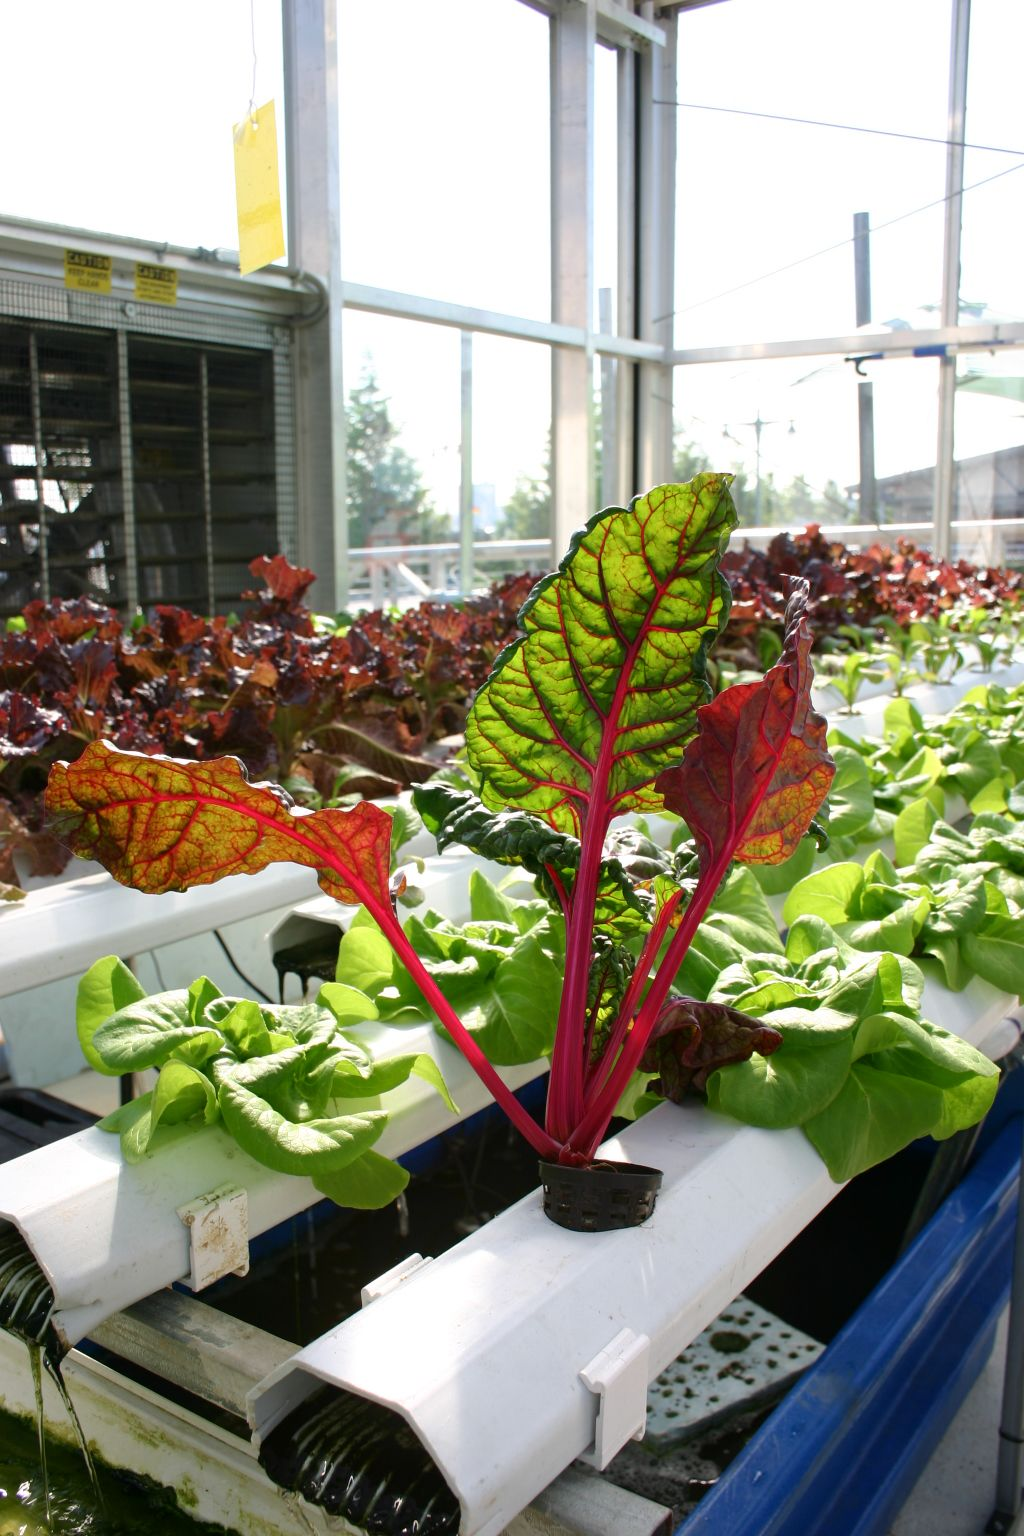 Aquaponics uses approximately 2% of the water that a conventionally irrigated farm requires for the same vegetation production!